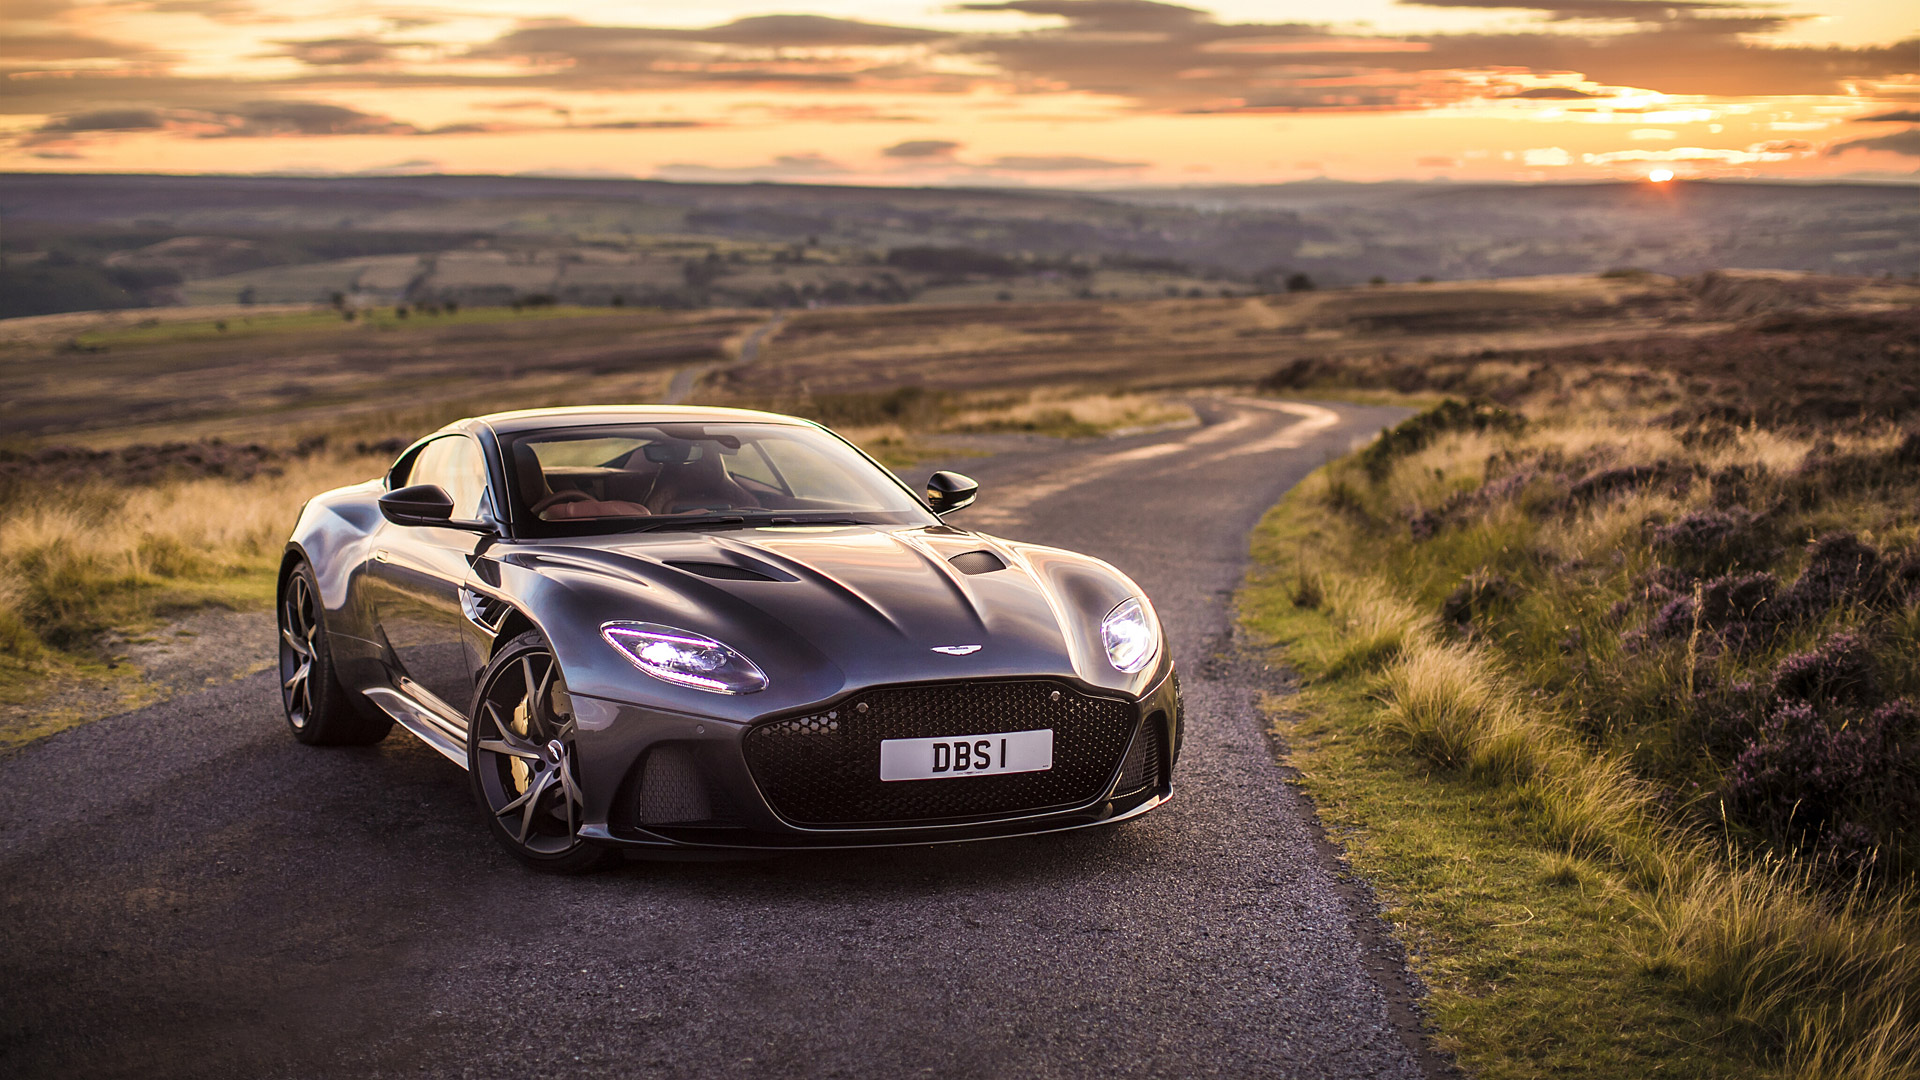 2019 Aston Martin DBS Superleggera Wallpapers HD Images   WSupercars 1920x1080